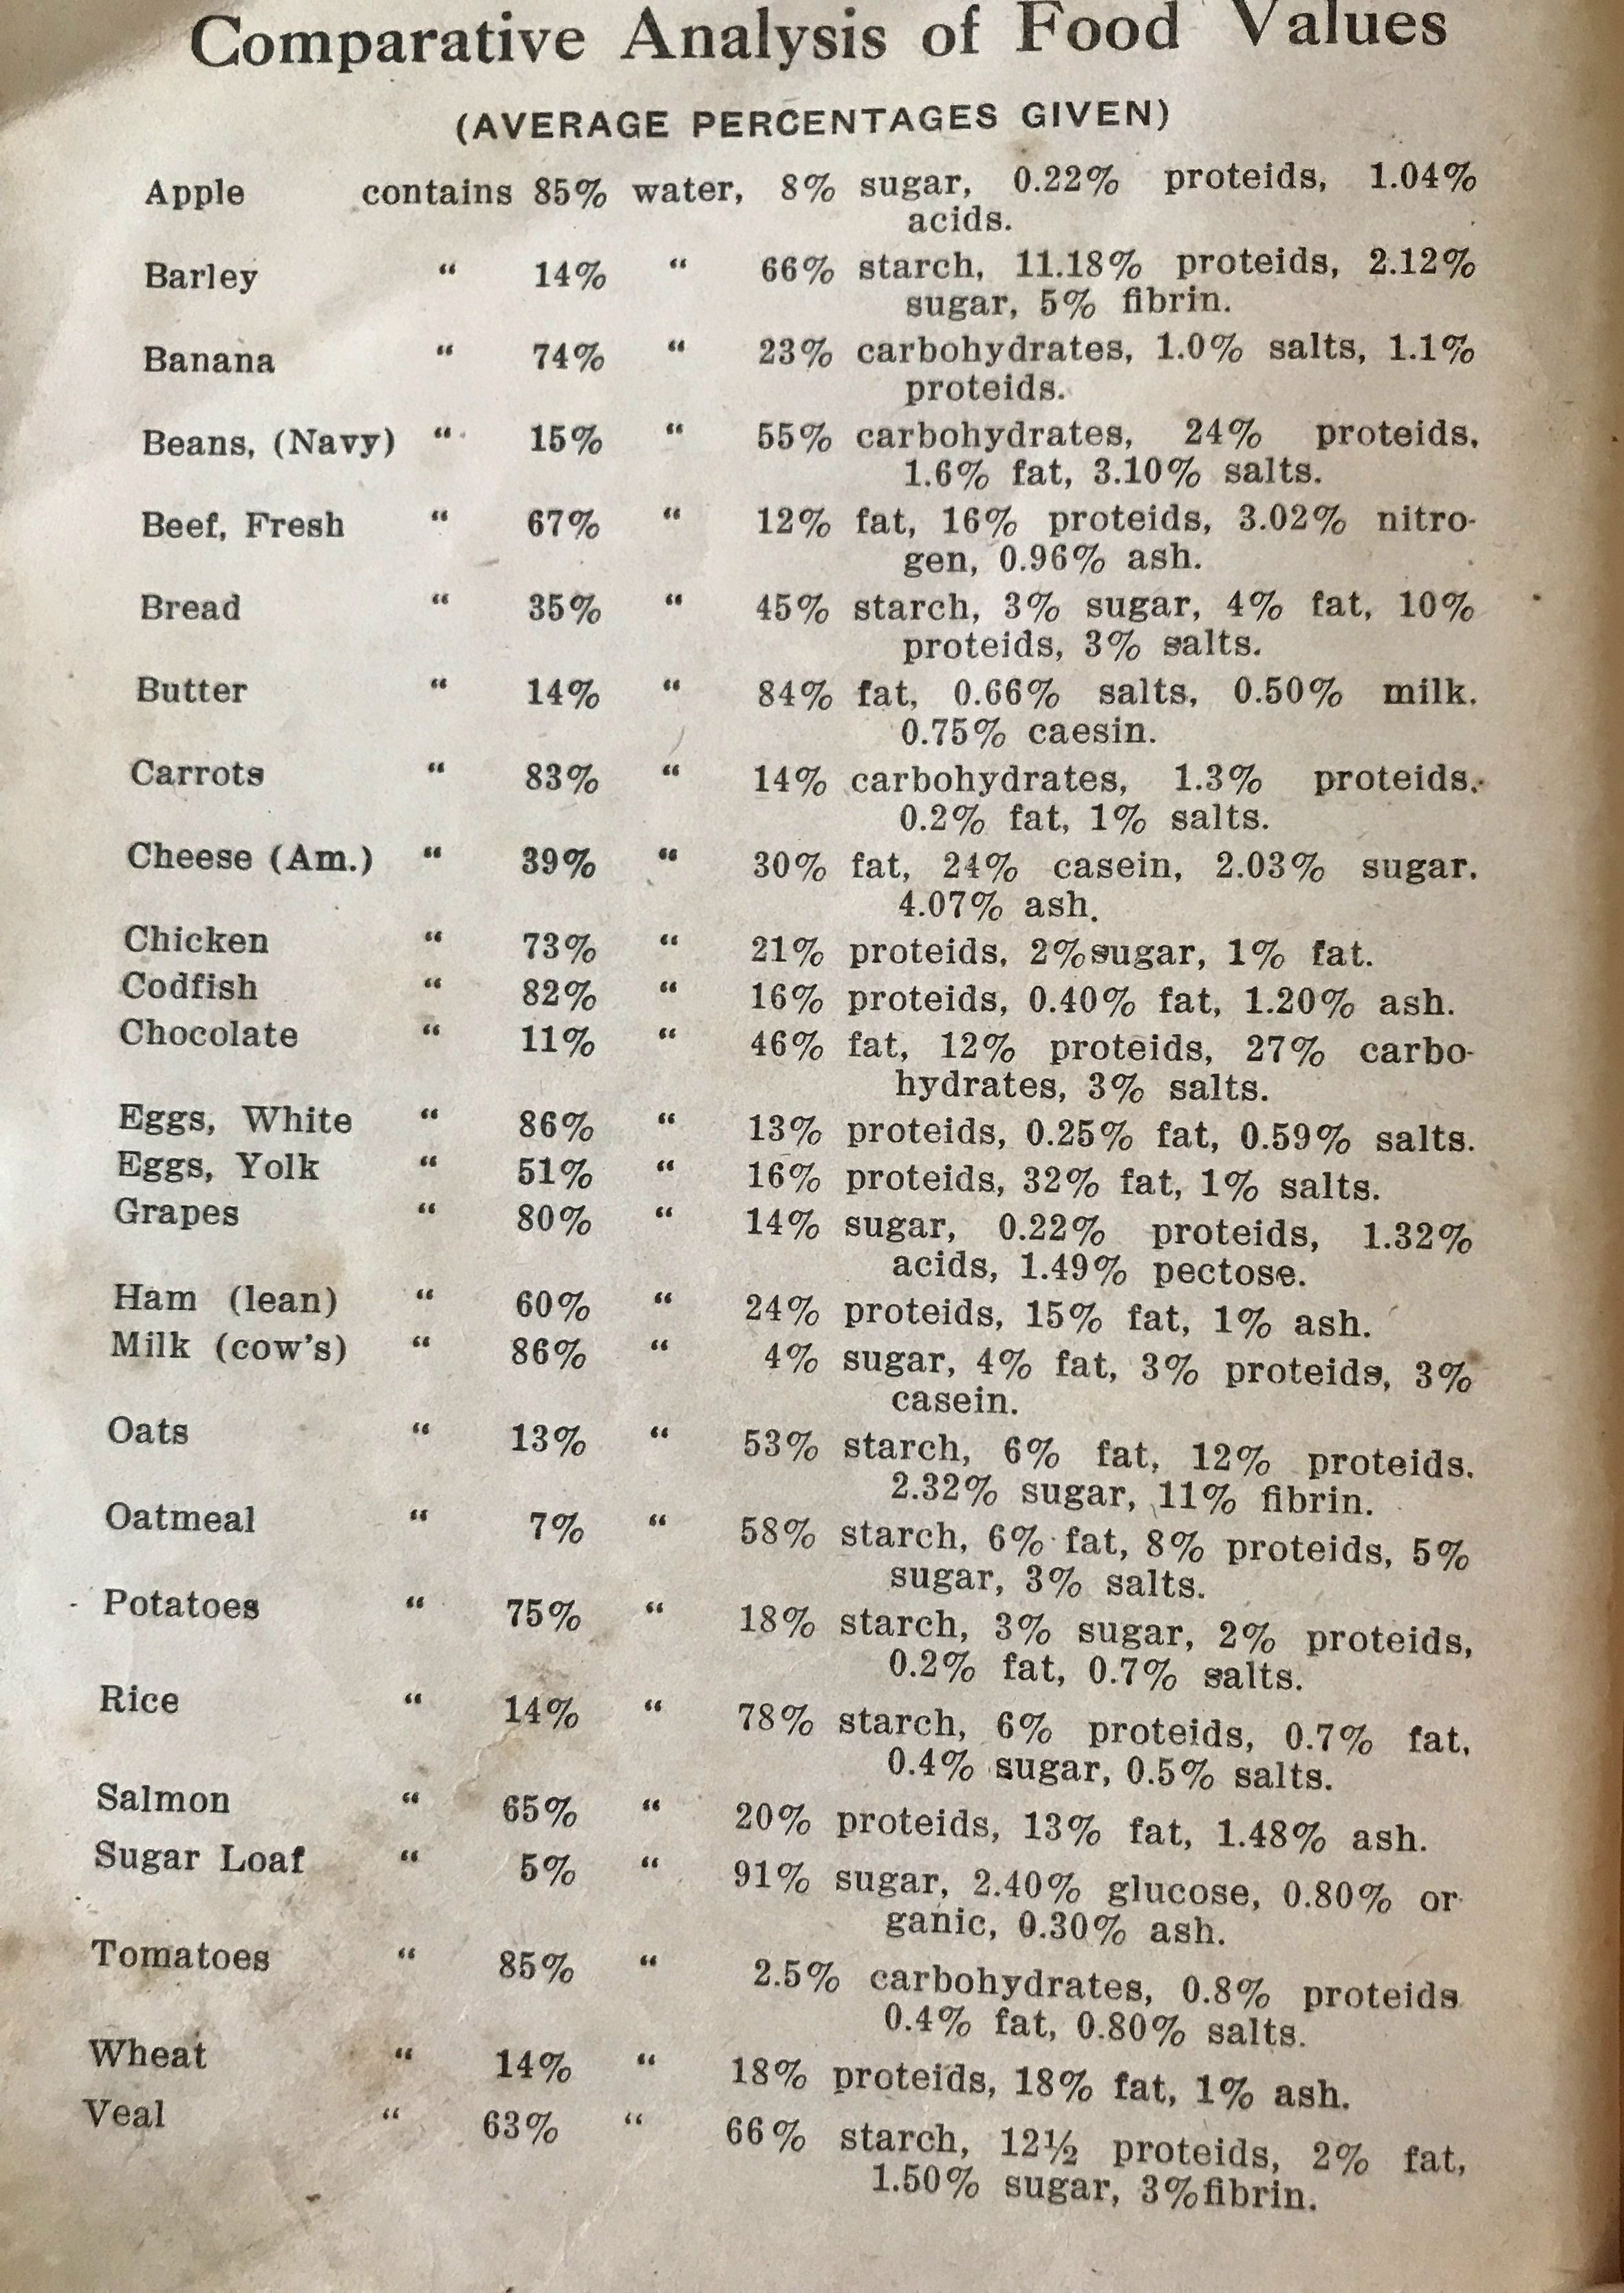 Nutrition, especially during times of war rationing, was mentioned often in a lot of these books and booklets. This also speaks to how we viewed the people who created the information in these books, the   Domestic Scientists  of the day.